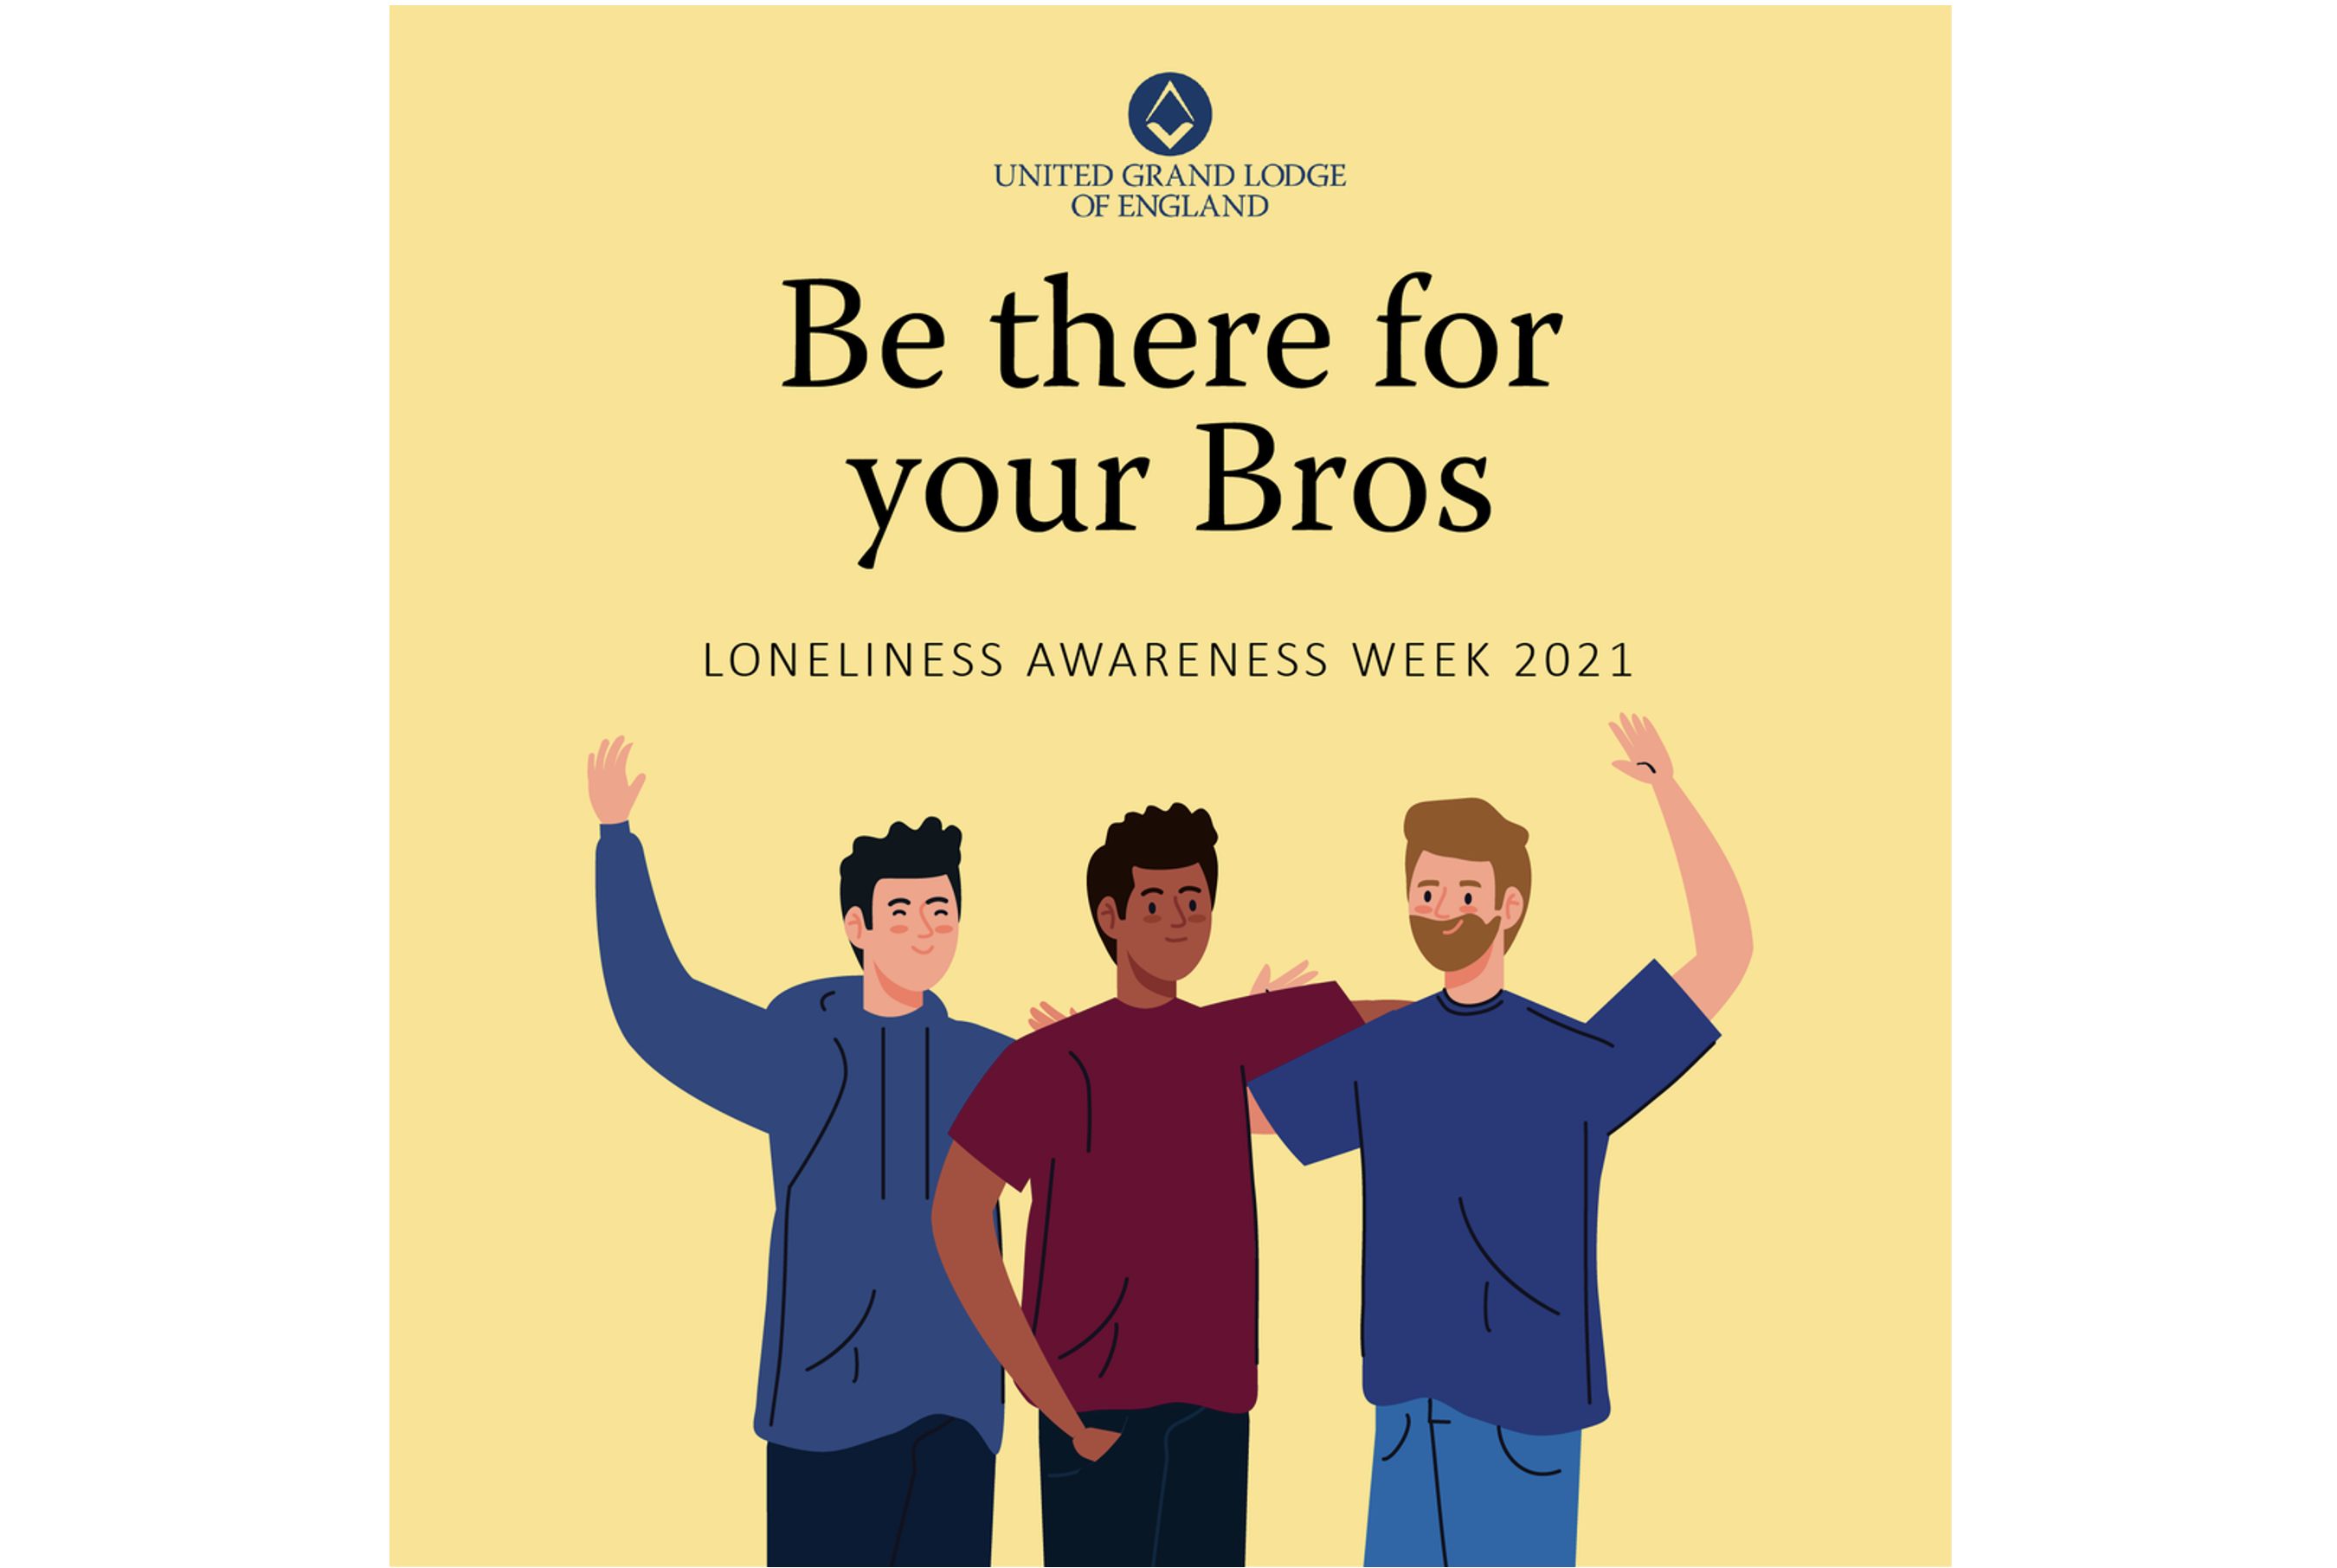 Be There for your Bros